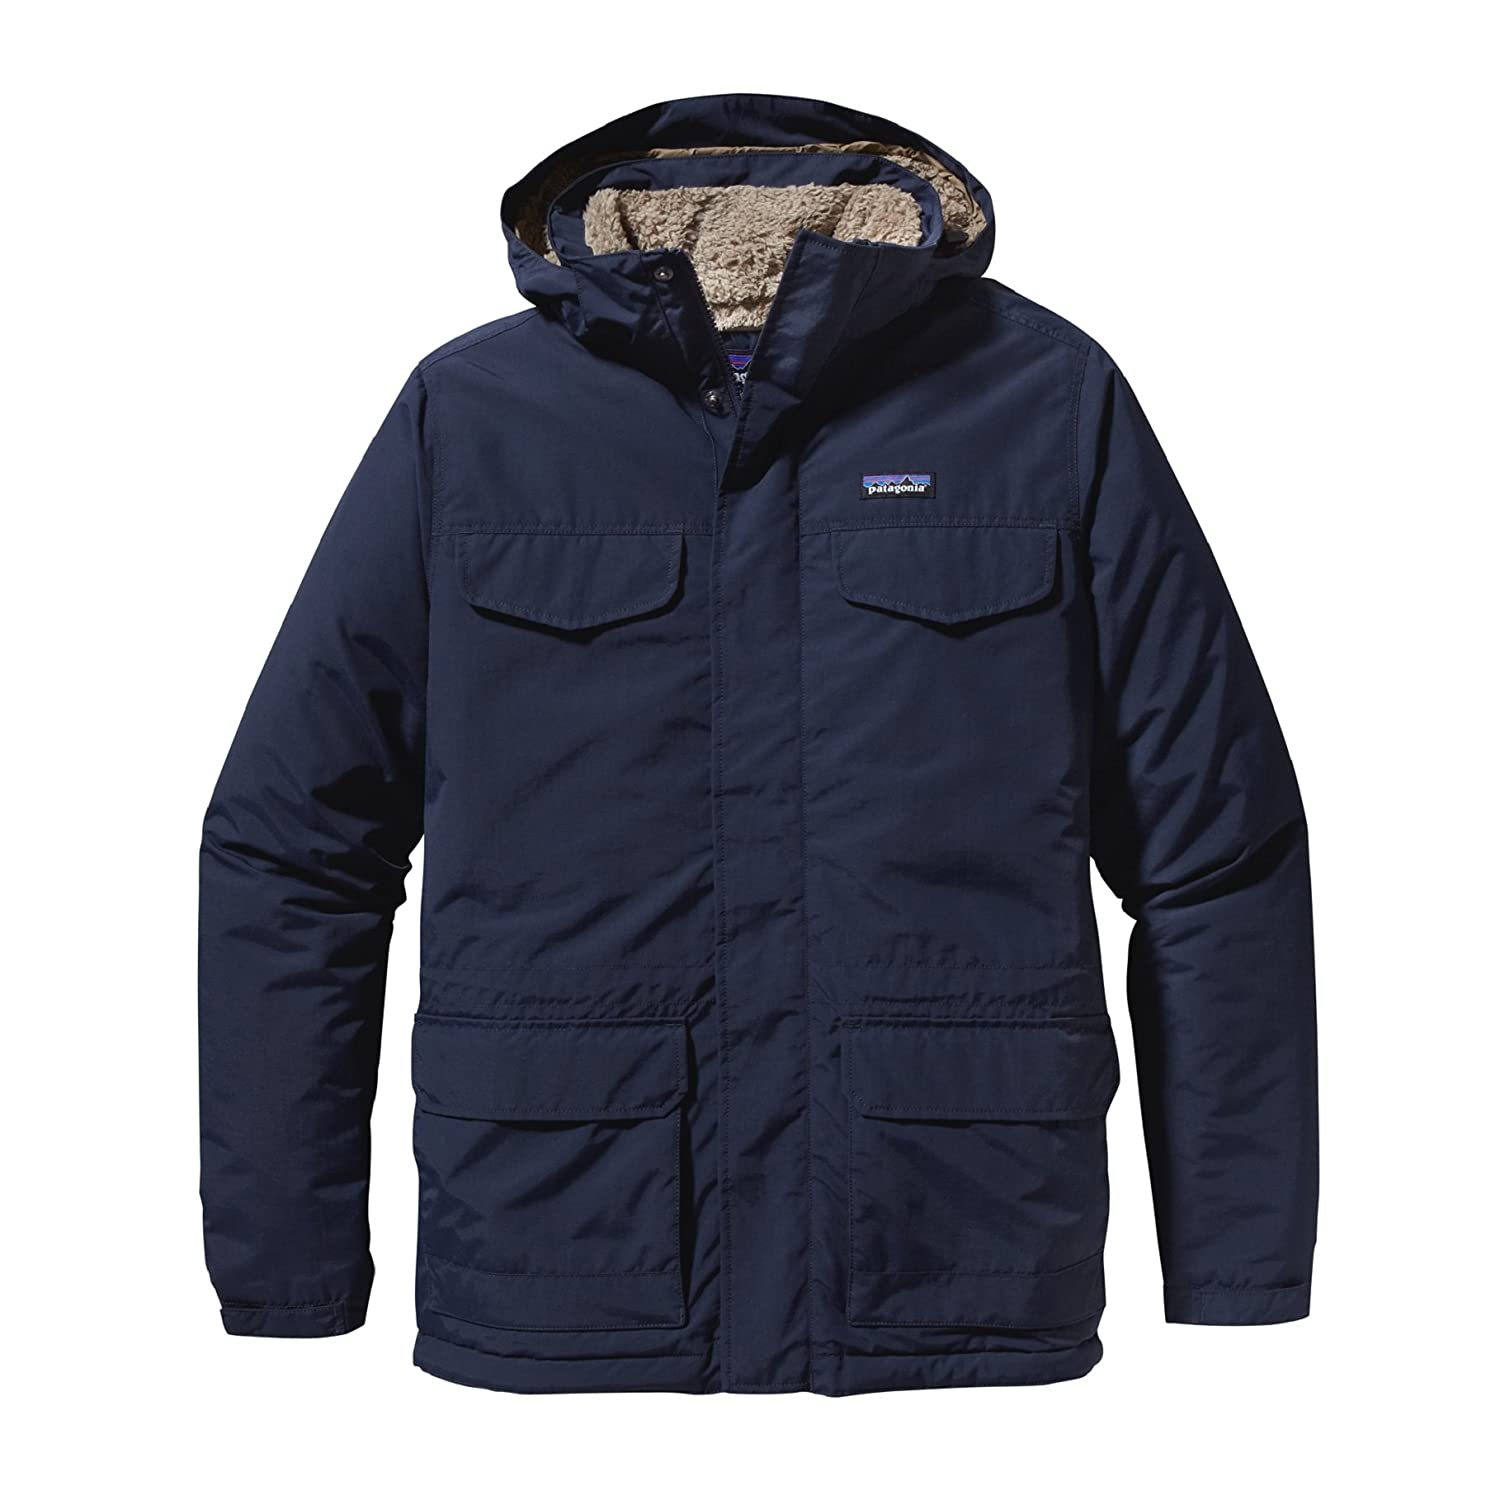 Patagonia Canvas Hoody Lined Jacket Men - Winterjacke